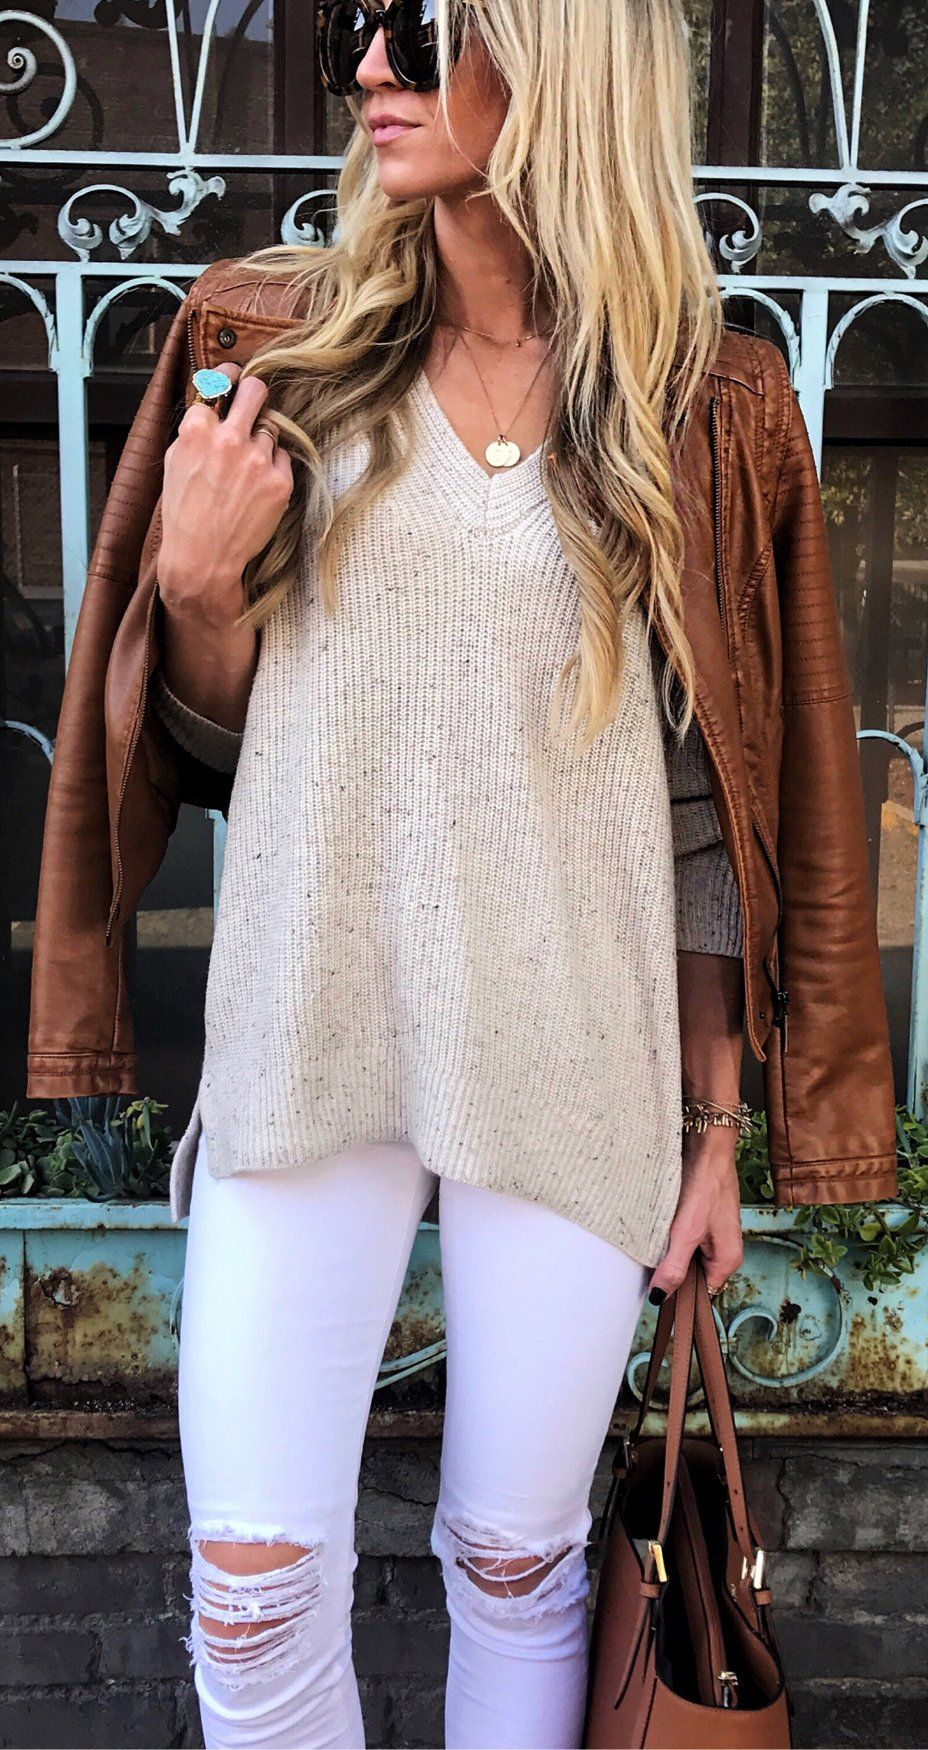 Brown Leather Jacket / Cream Vneck Knit / Ripped Skinny